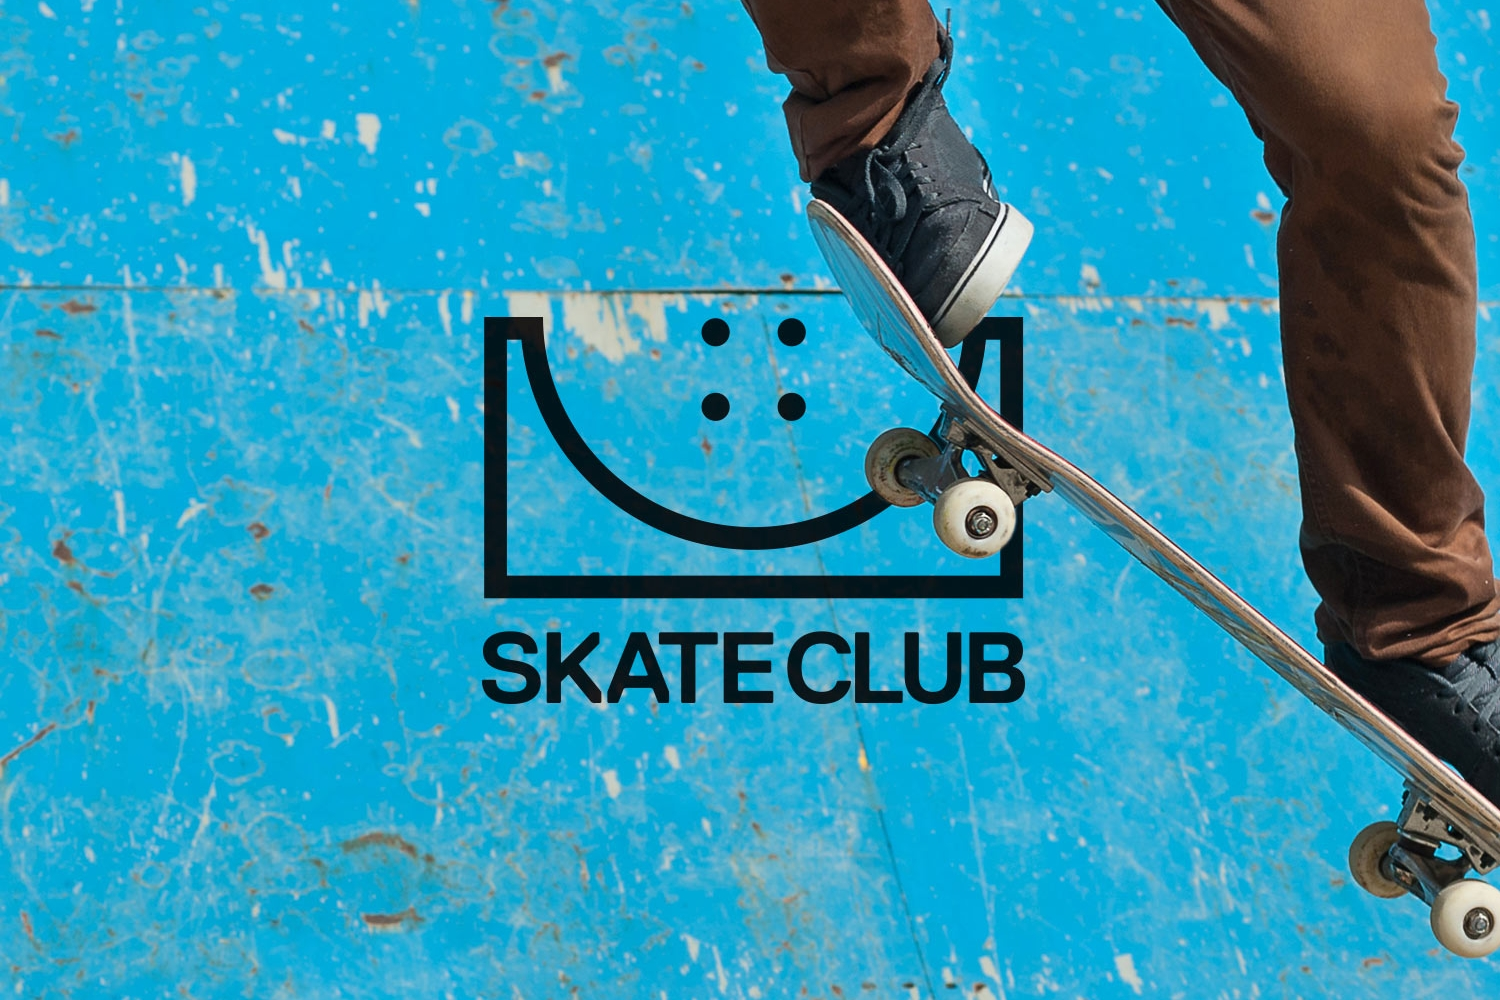 VSA Skate Club - Branding, Collateral, Publication